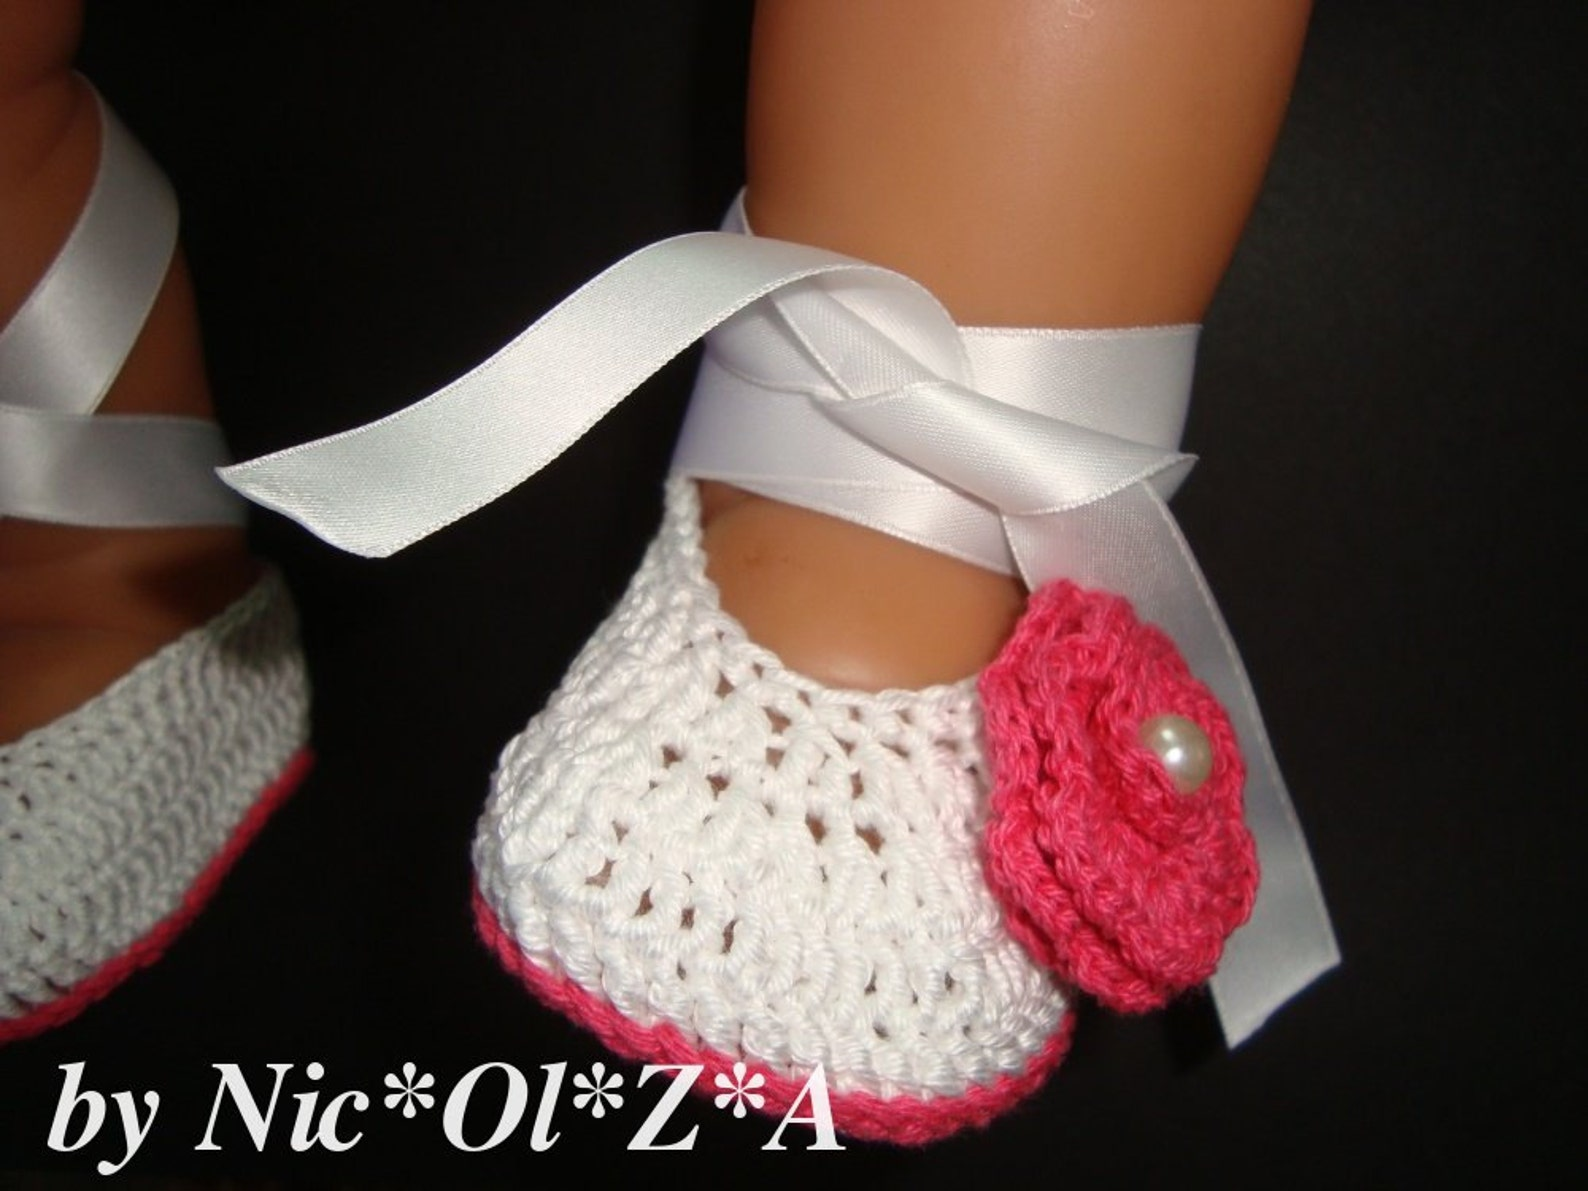 baby girl handmade crochet white with flower & ribbon ballet shoes booties slipper 0 -3 months